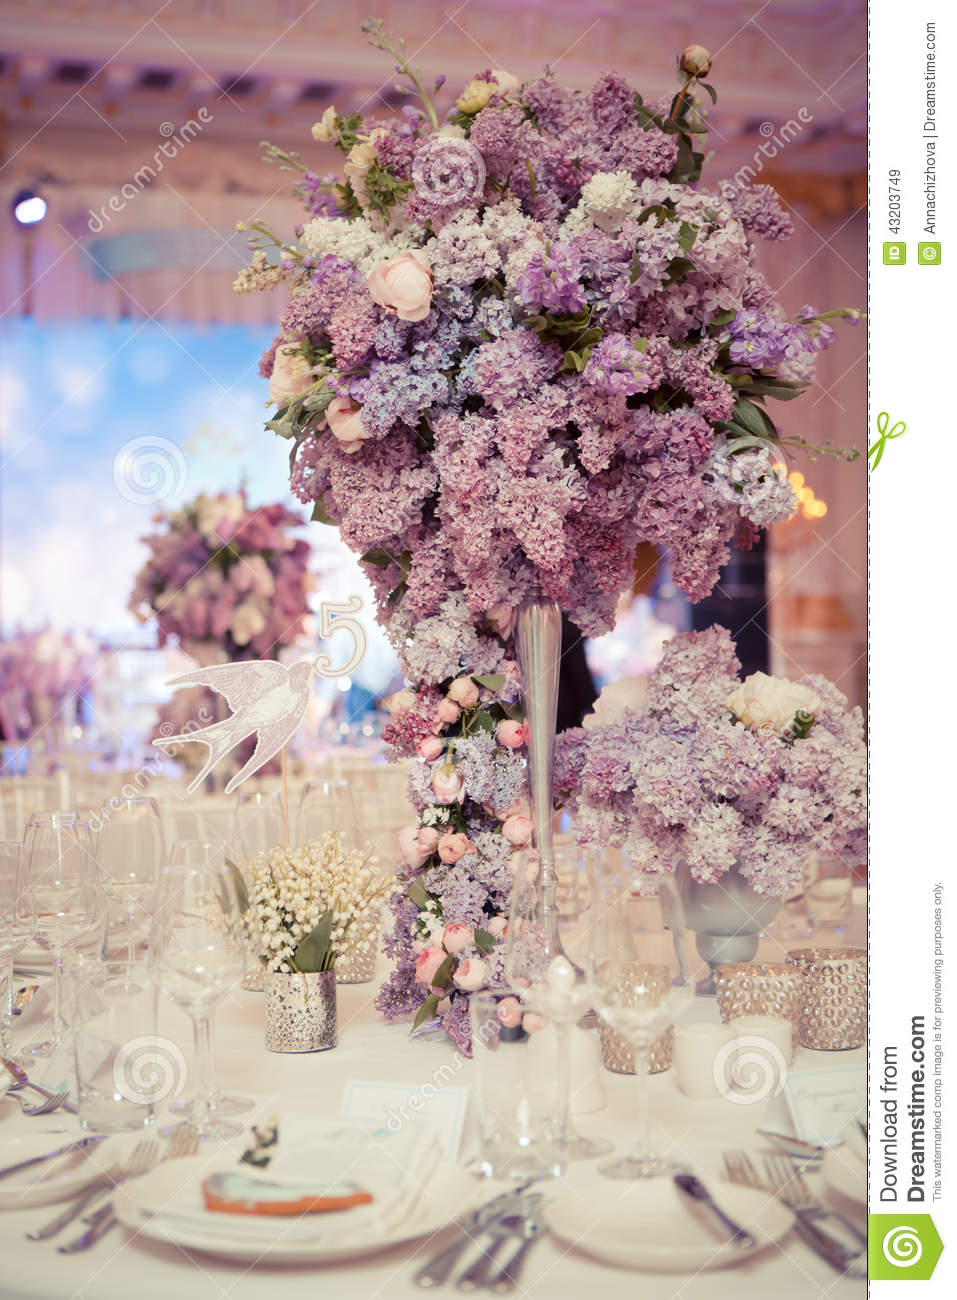 Festive Table Decoration In Lilac Colours Stock Photo Image 43203749